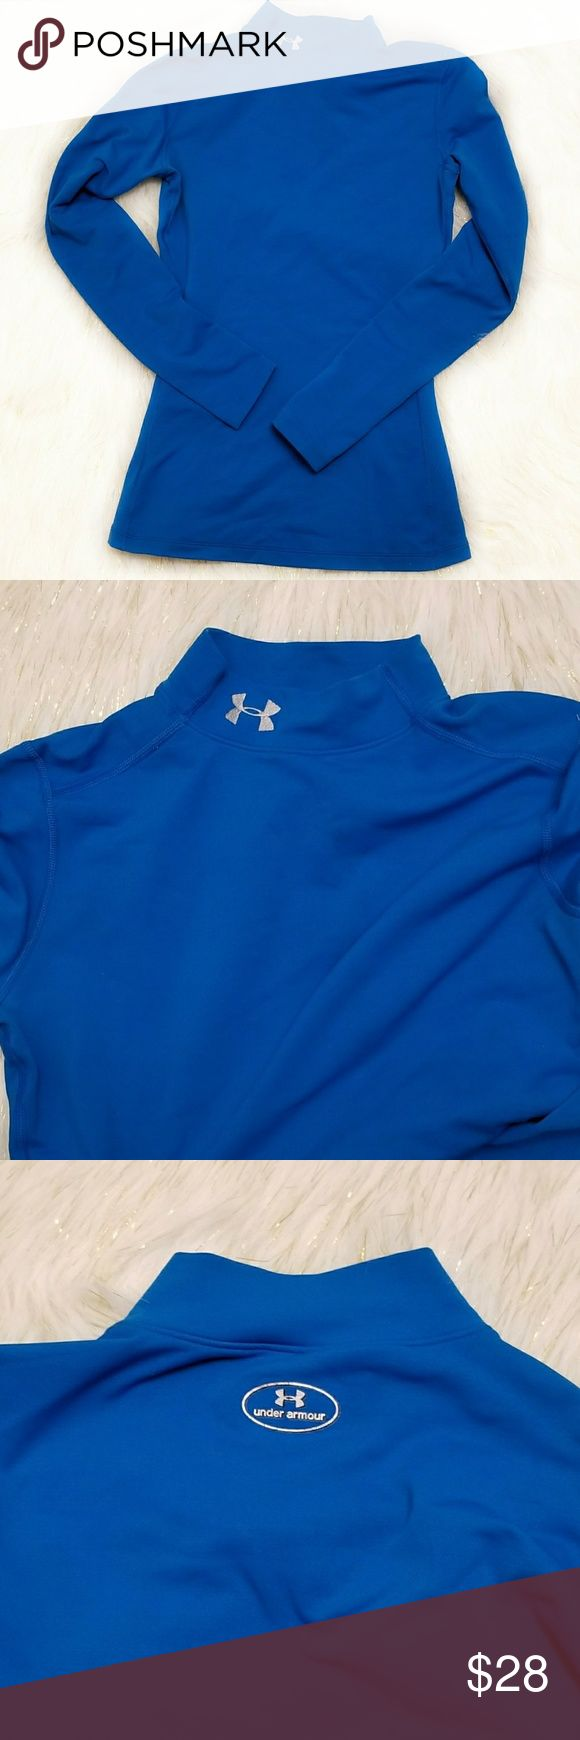 Under Armour Blue Cold weather Gear NWOT Blue Cold weather Gear under armour long sleeve, NWOT. Never worn. Clothes were made to be loved! Open to offers! Pet free. Smoke free. No trades. Bundle 3 or more for 10% off! Under Armour Tops Tees - Long Sleeve